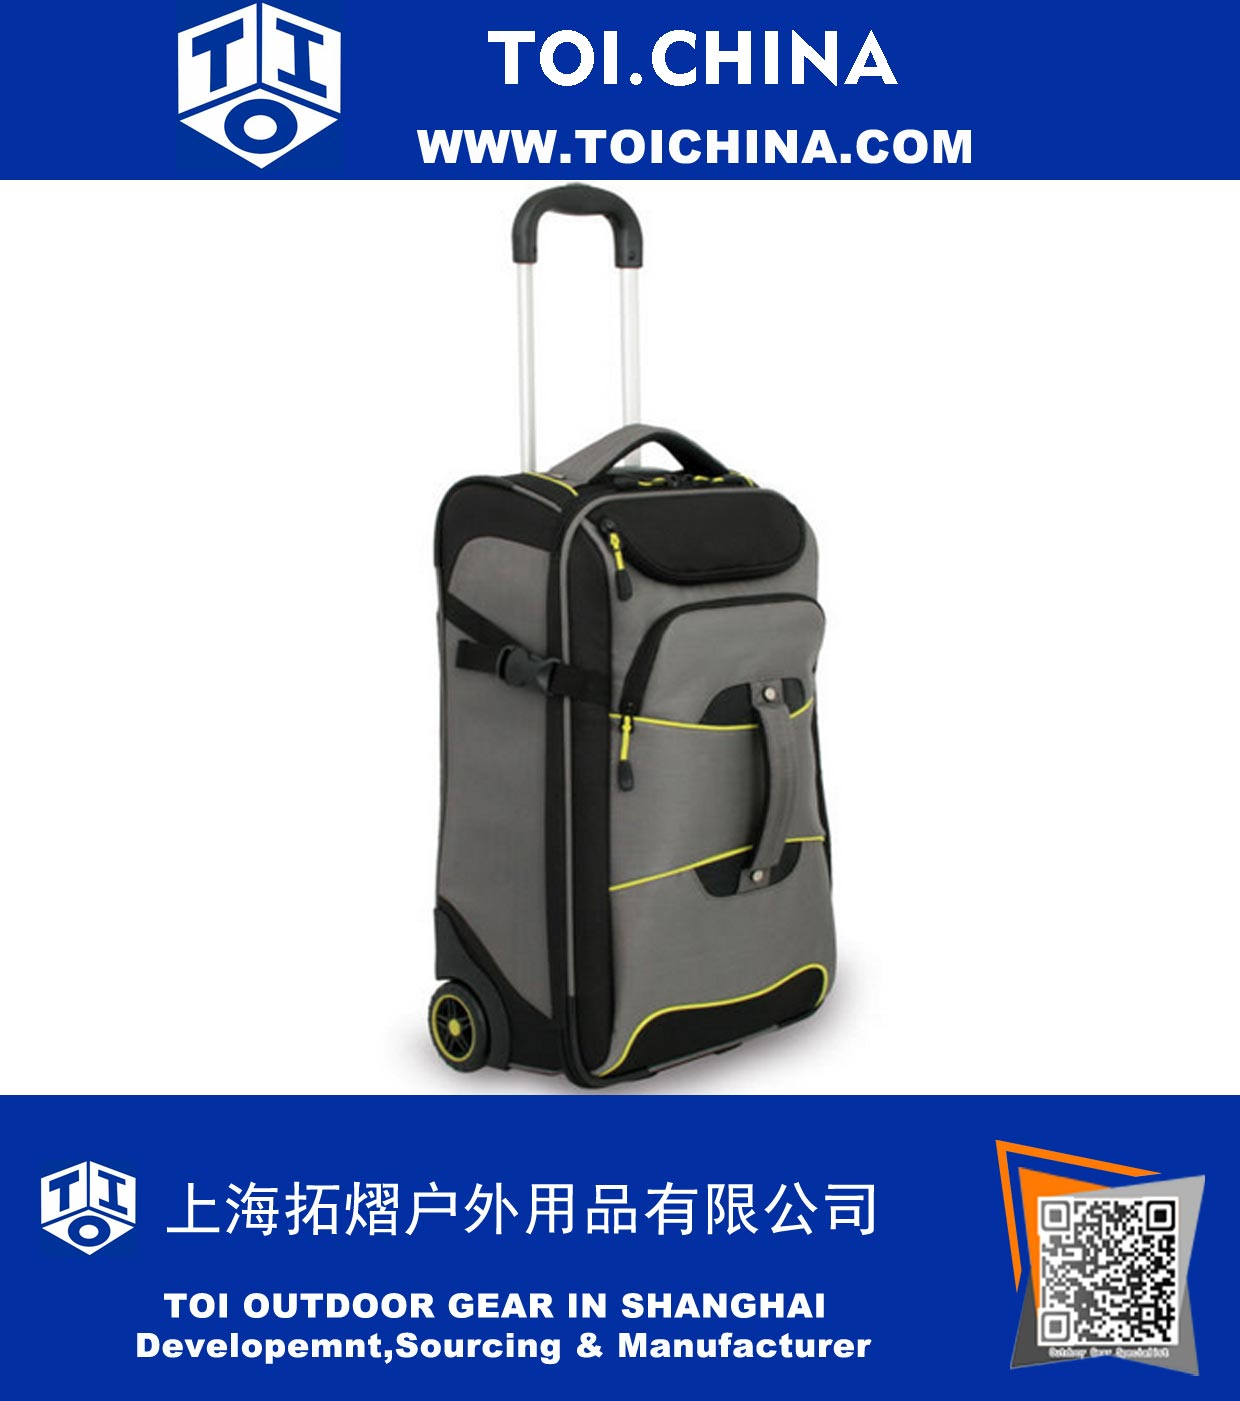 21 Inch Rolling Luggage Lift Backpack Carry-On, ST-ZC001